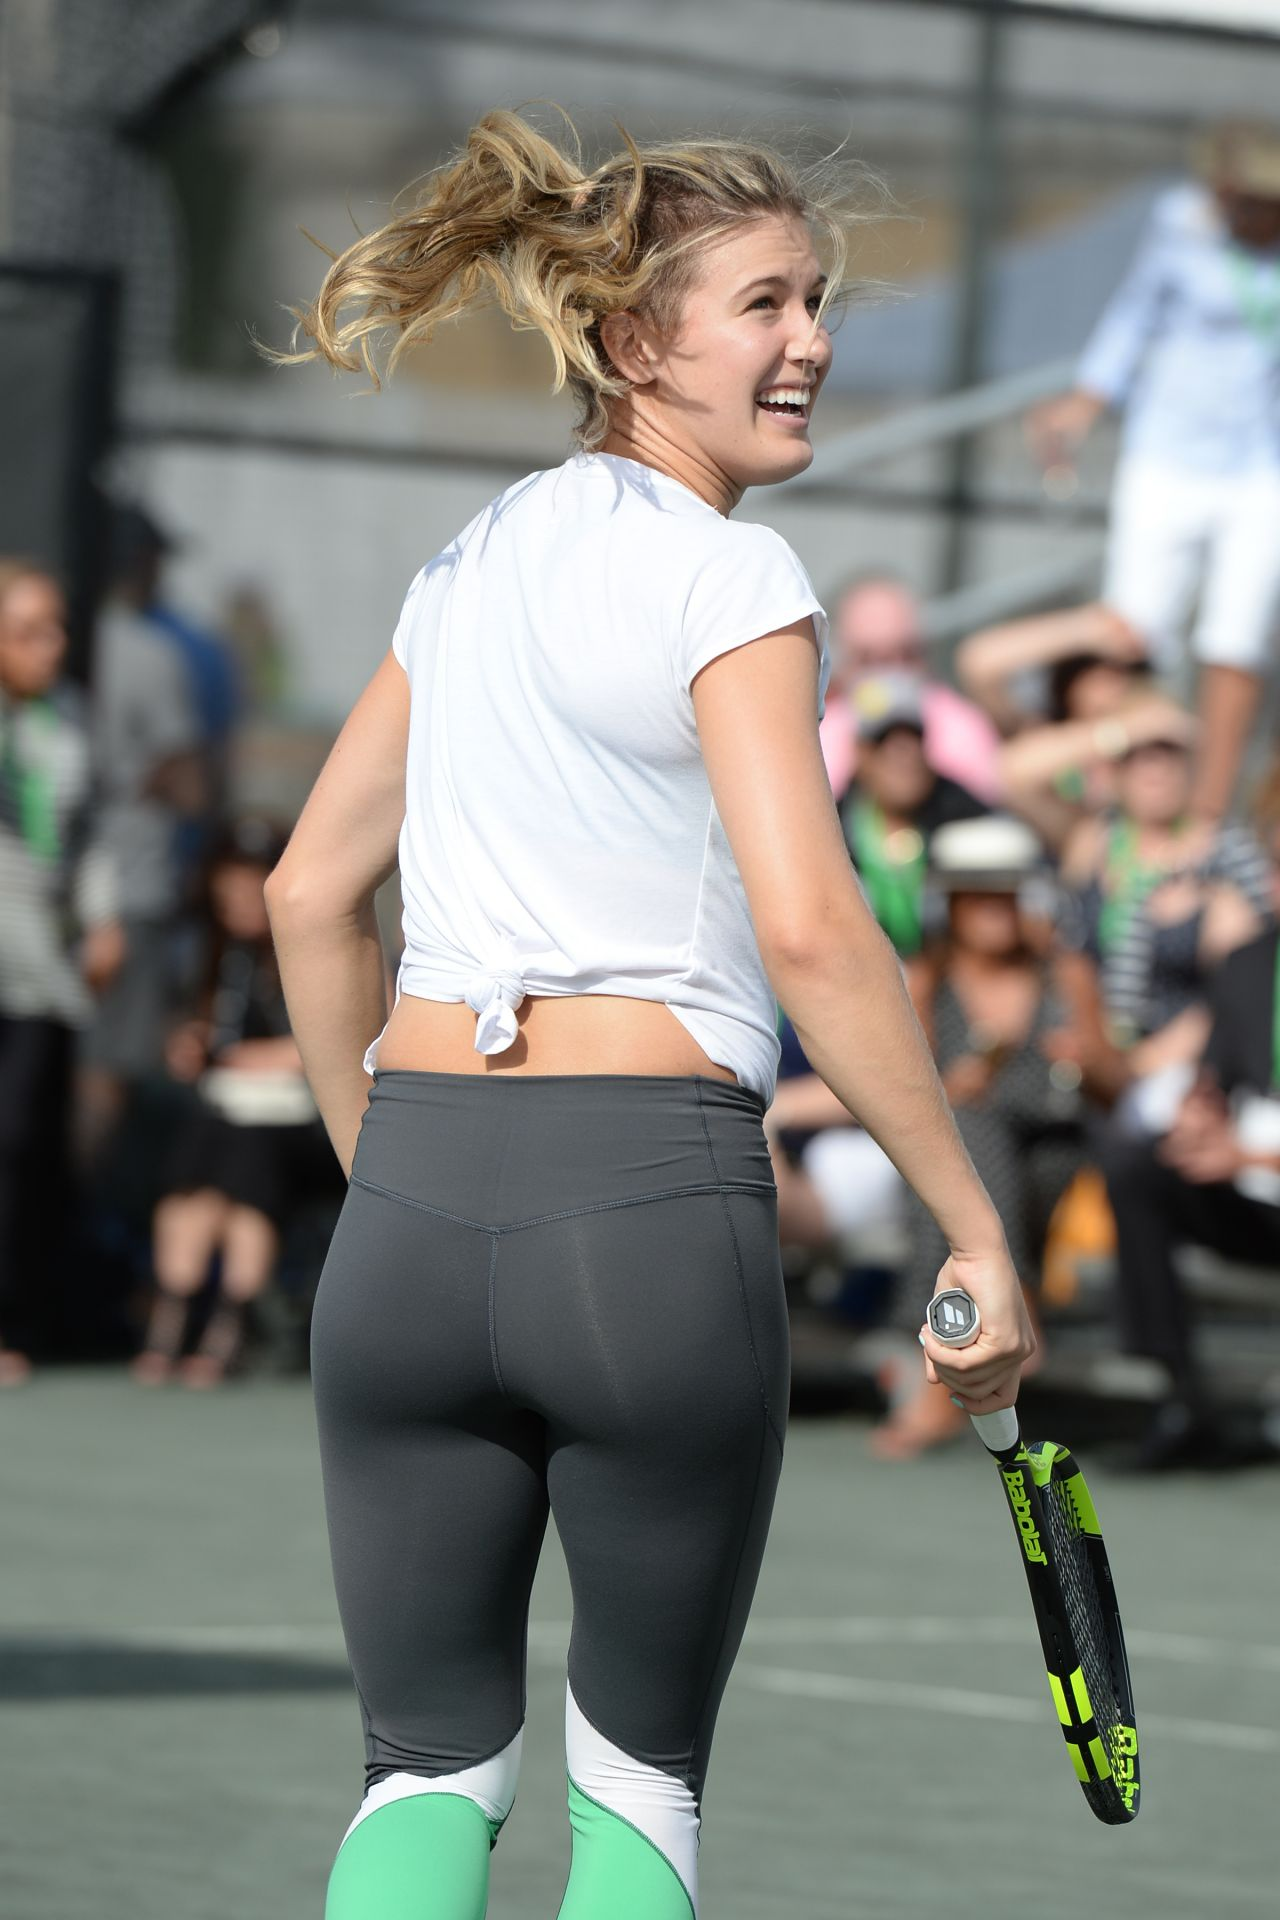 Eugenie Bouchard, Serena Williams  Chris Evert - All Star Tennis Event, The Miami -4351